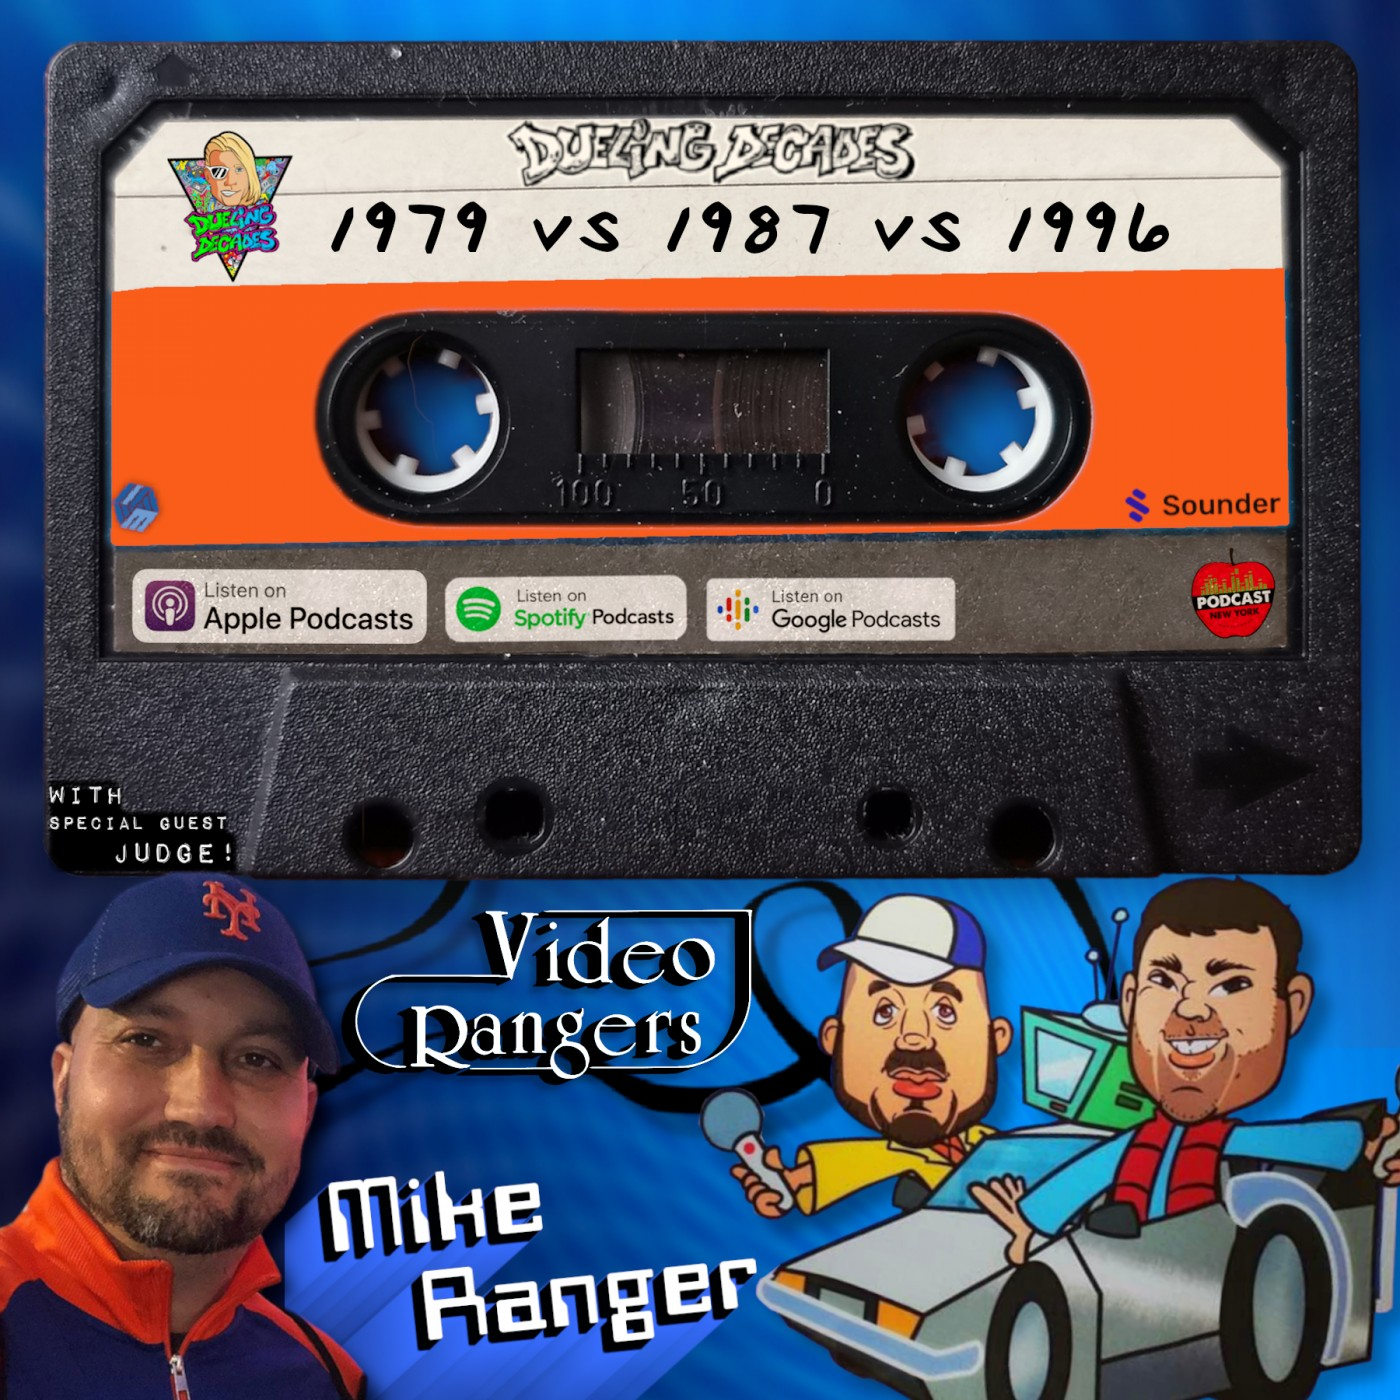 Mike Ranger returns to rule over this retro rumble between 1979, 1987 & 1996!